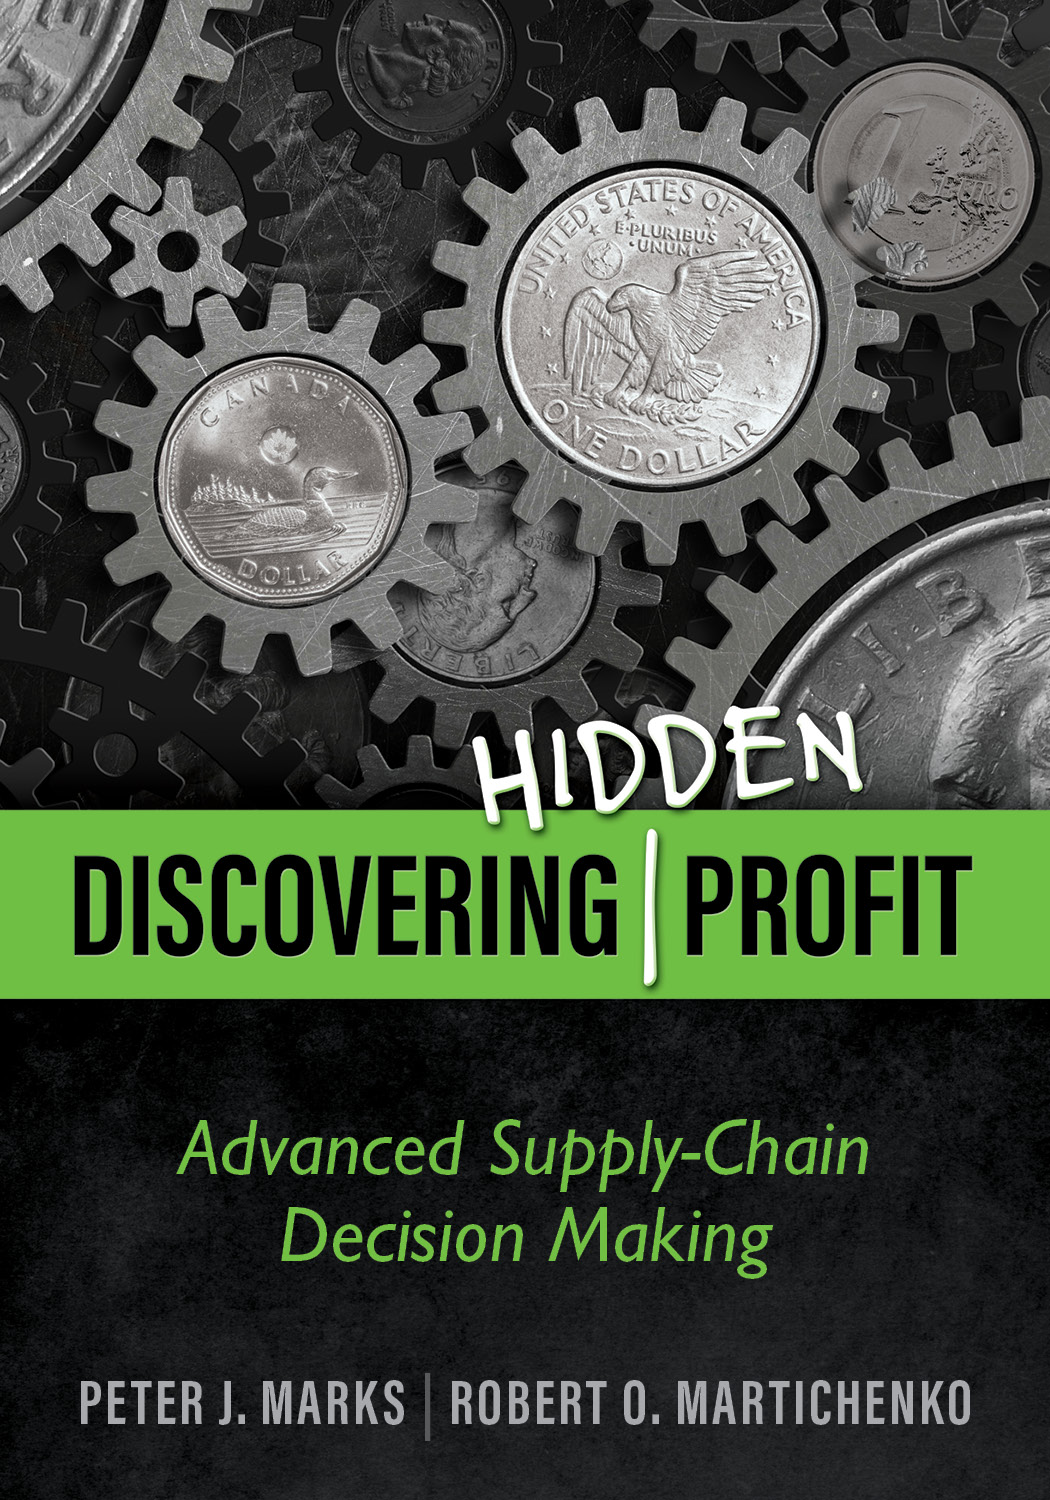 DiscoveringProfit_CoverR9-1-1.jpg